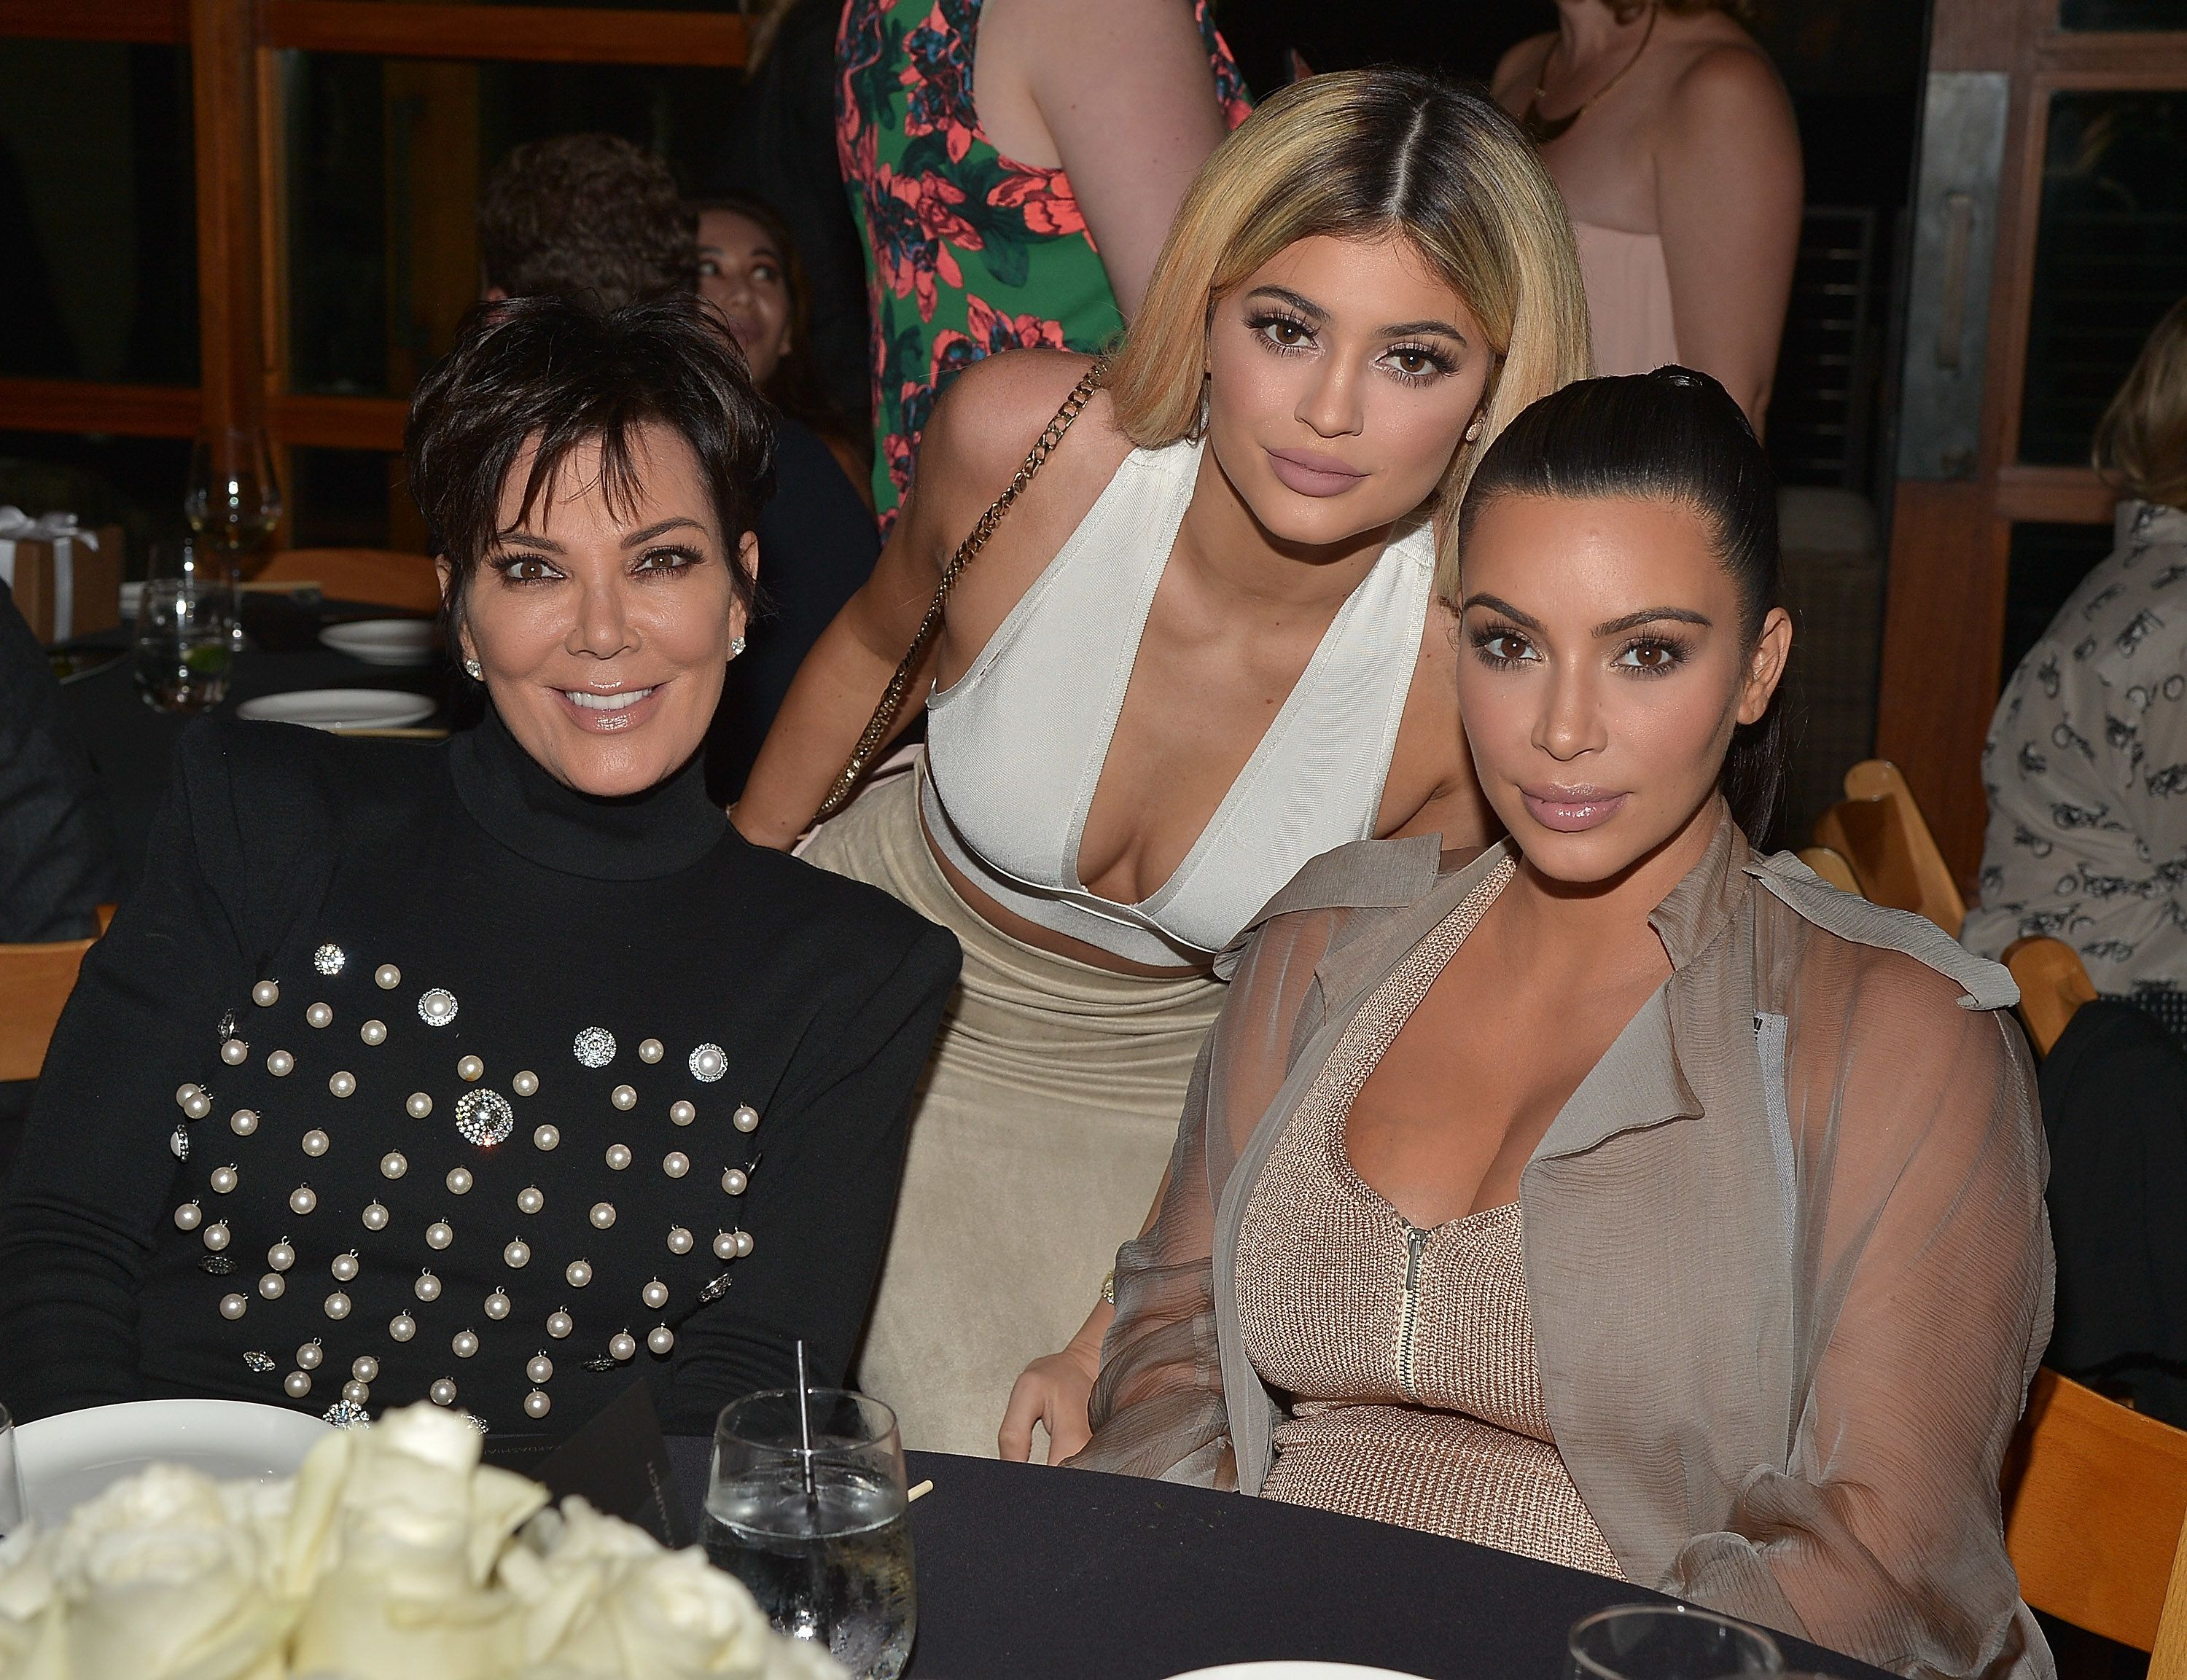 MALIBU, CA - SEPTEMBER 01:  Kim Kardashian West, Kylie Jenner, Khloe Kardashian and Kris Jenner, Kylie Jenner and Kim Kardashian West host a  dinner and preview of their new apps launching soon at Nobu Malibu on September 1, 2015 in Malibu, California.  (Photo by Charley Gallay/Getty Images for Kardashian/Jenner Apps)